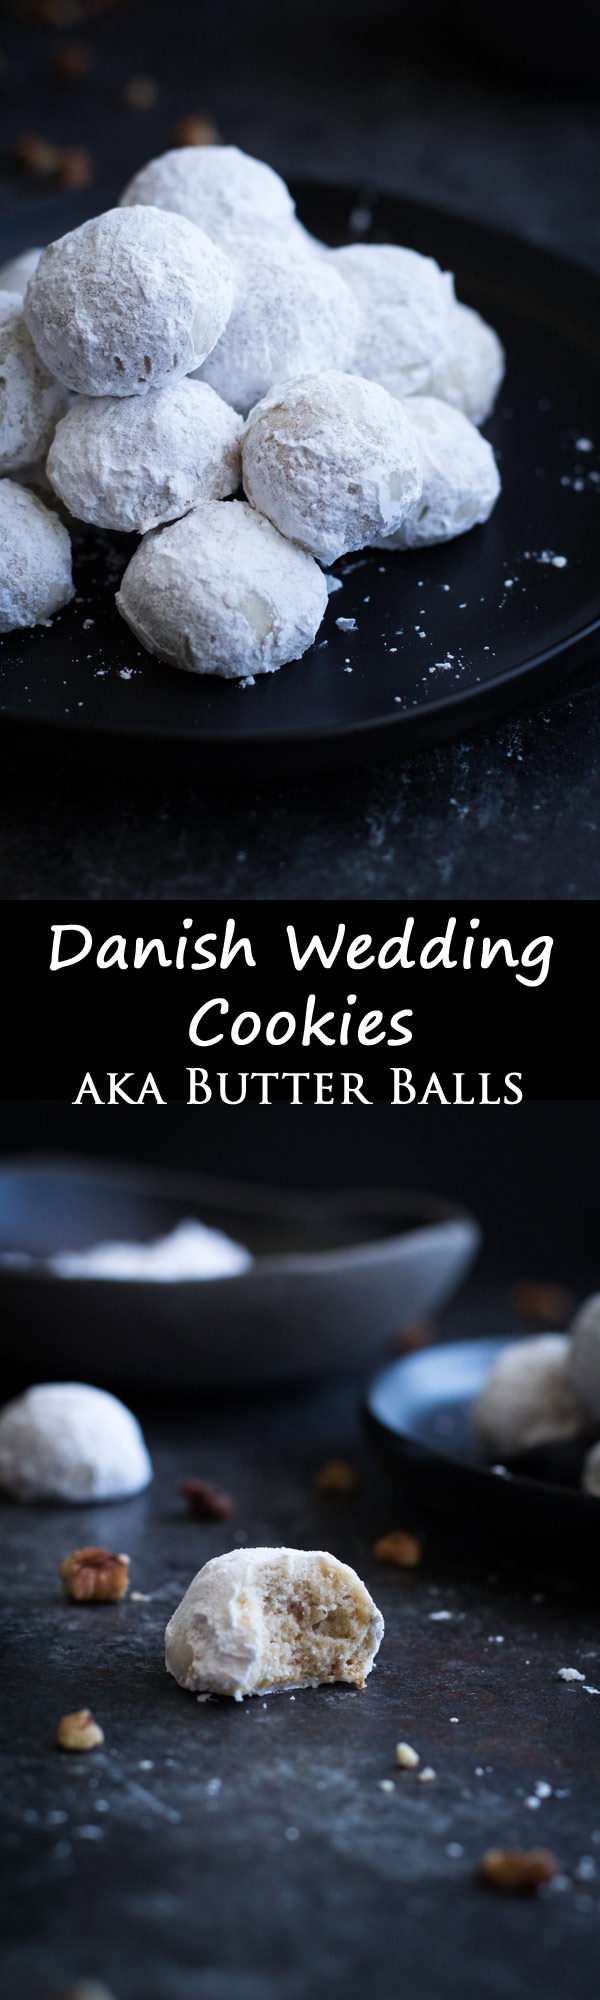 Danish Wedding Cookies! Butter balls made with pecans and rolled in powdered sugar!